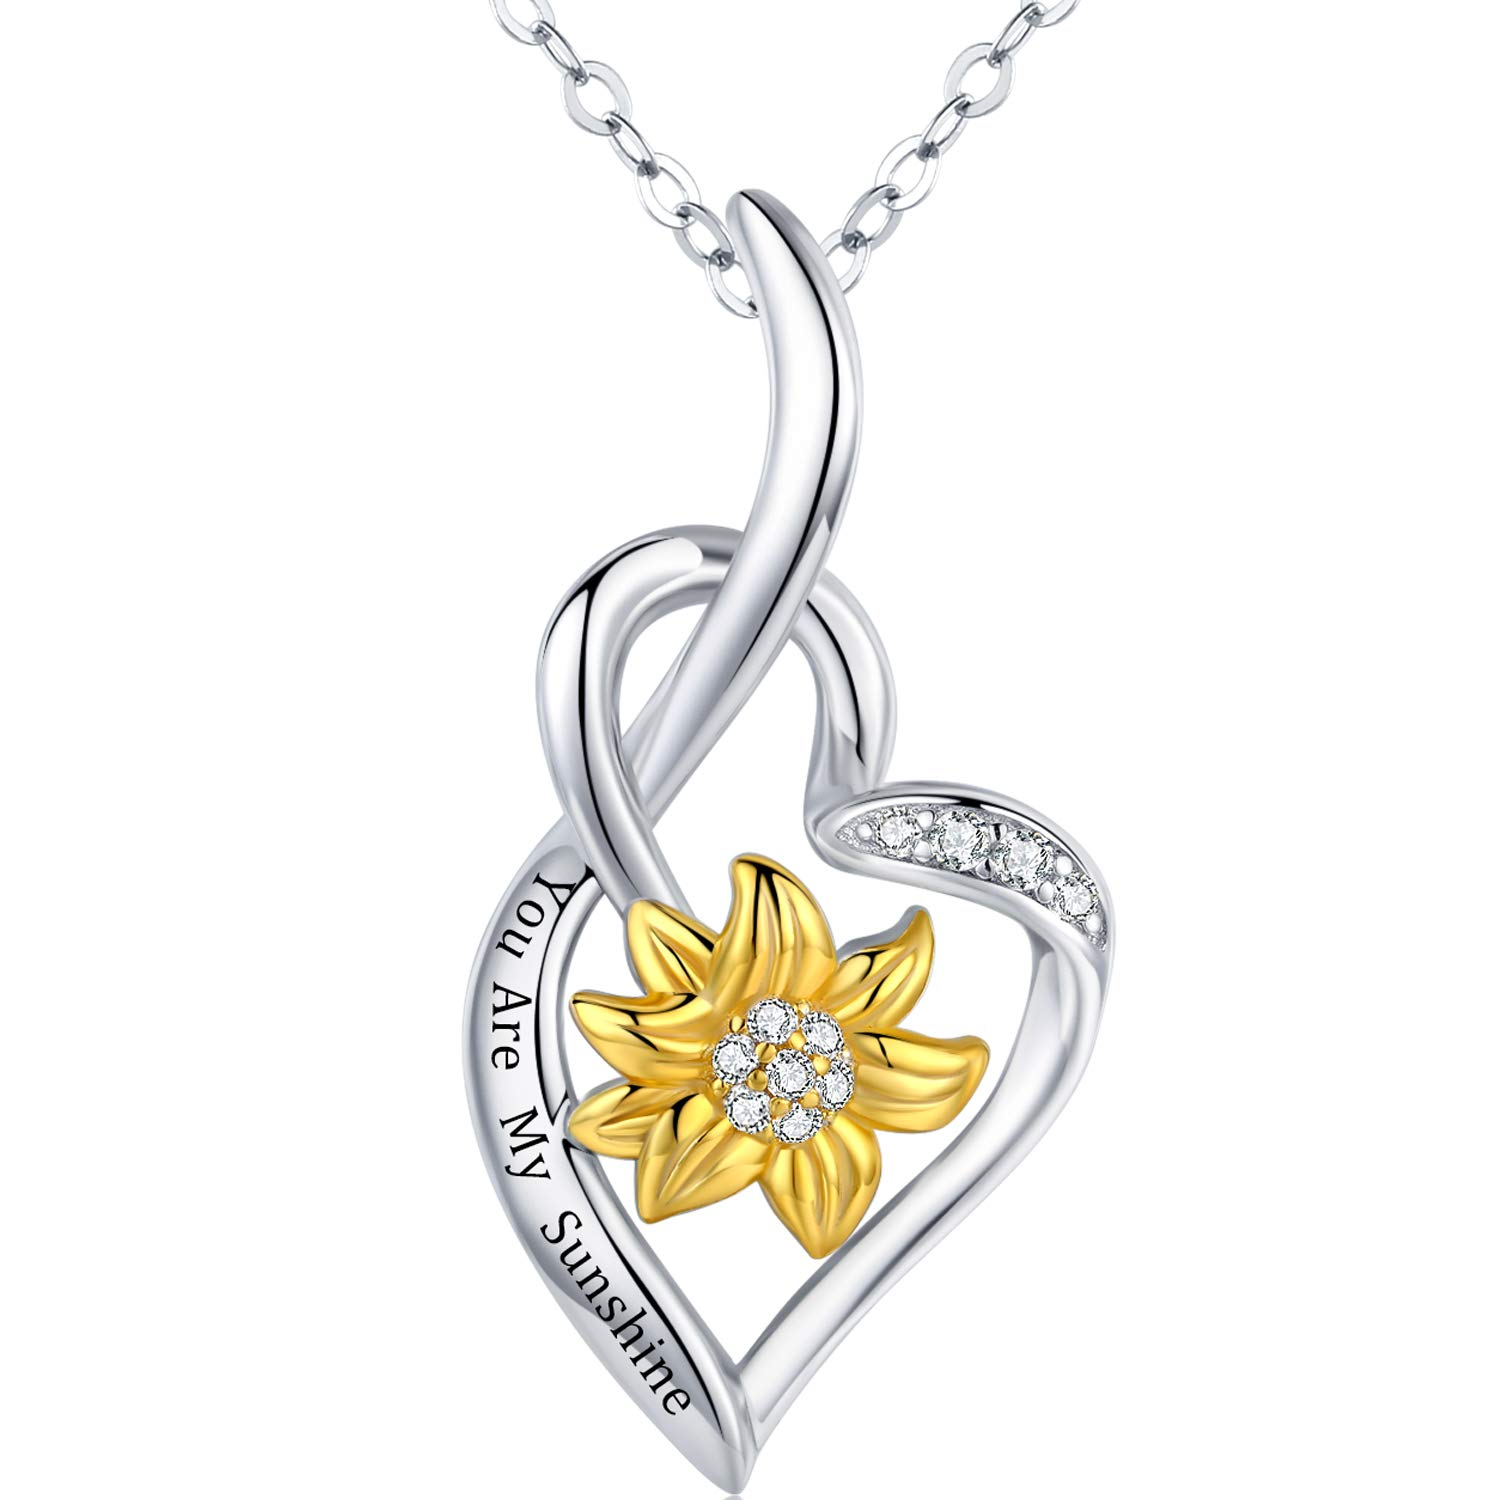 PRAYMOS Sunflower Necklace 925 Sterling Silver You are My Sunshine Necklace Heart Pendant Engraved Jewelry Anniversary Birthday Gifts for Her Women